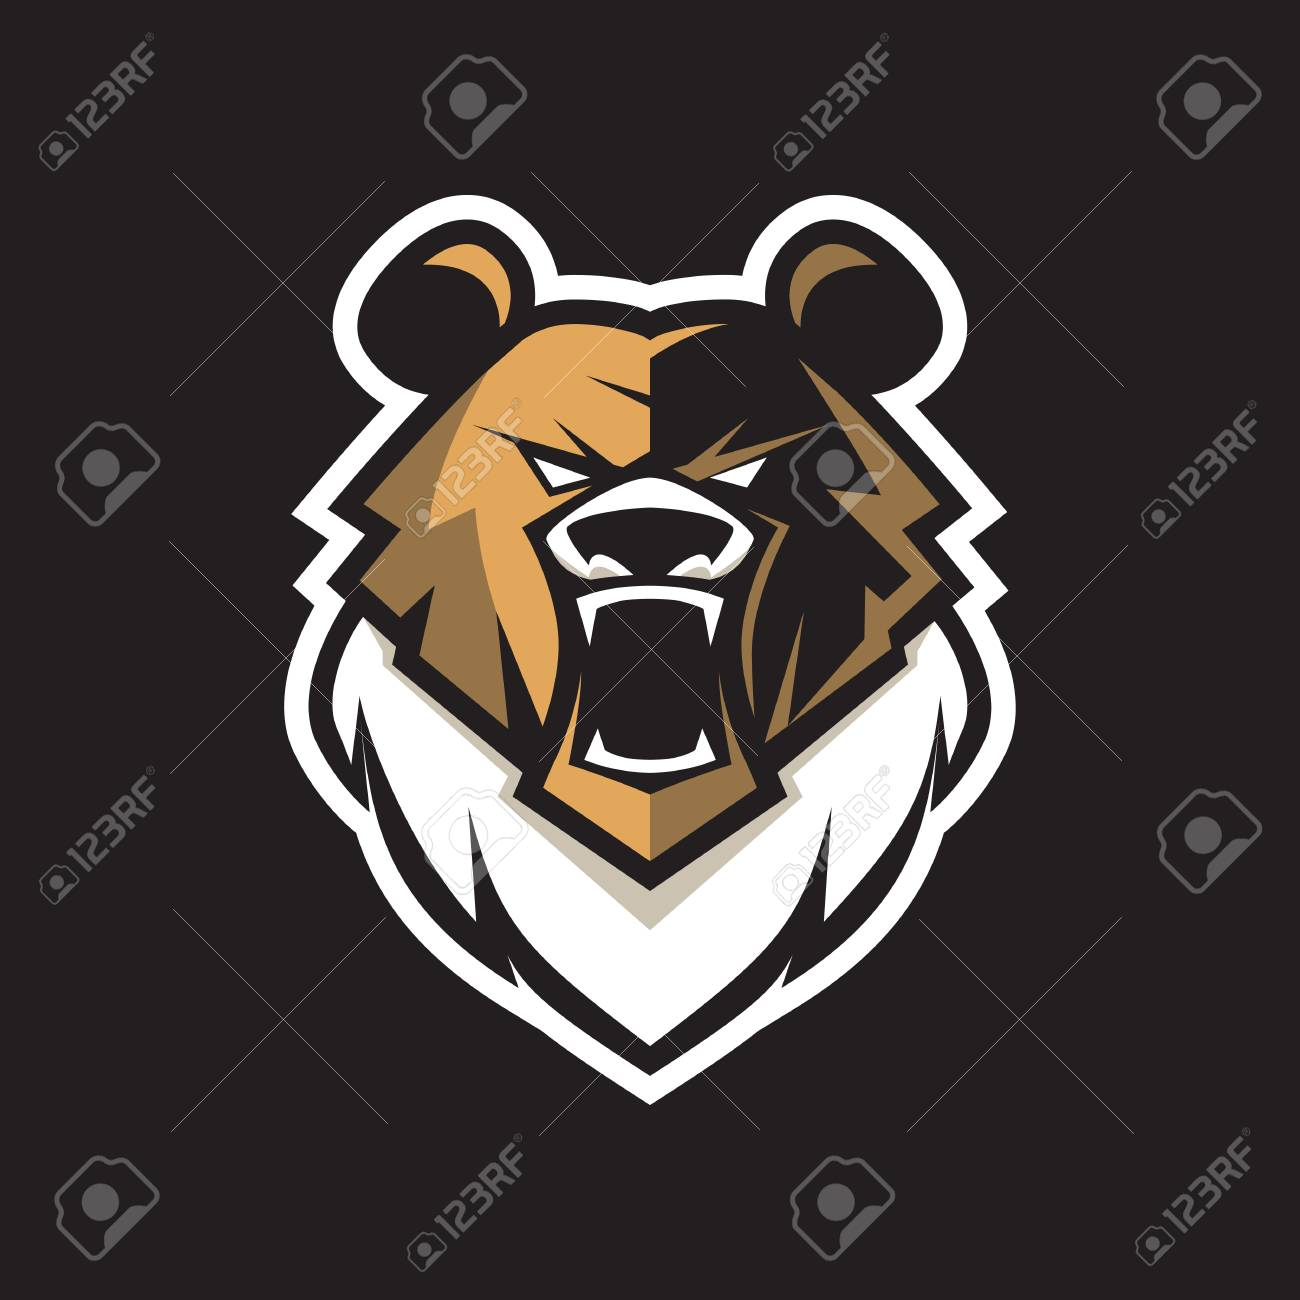 vector logo bear for game team can use for sticker label print